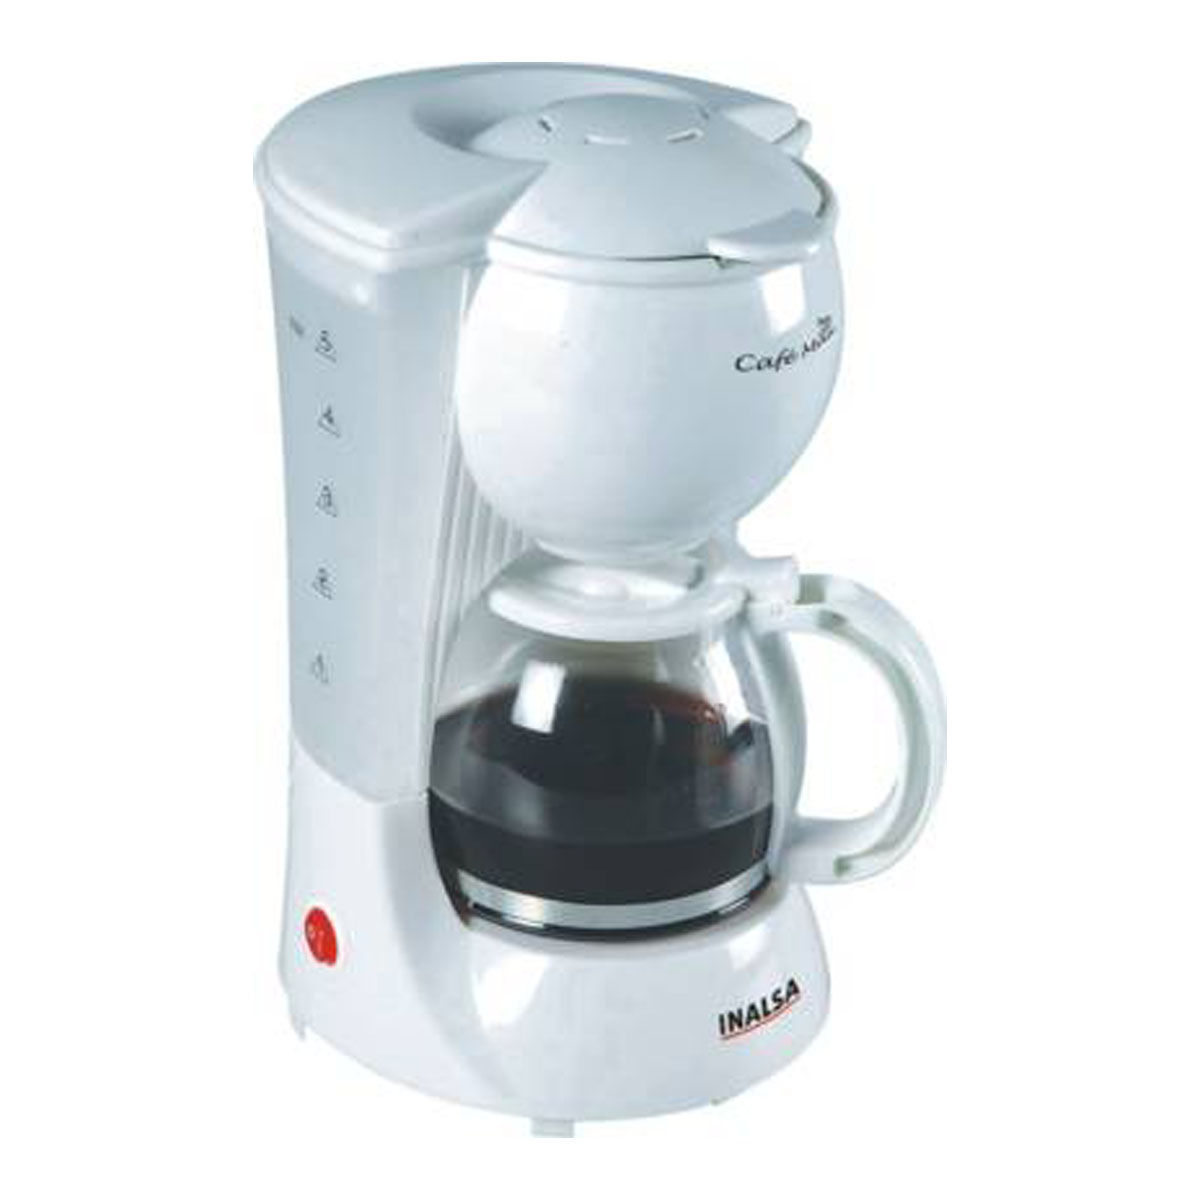 Inalsa Cafe Max 5 cups Coffee Maker